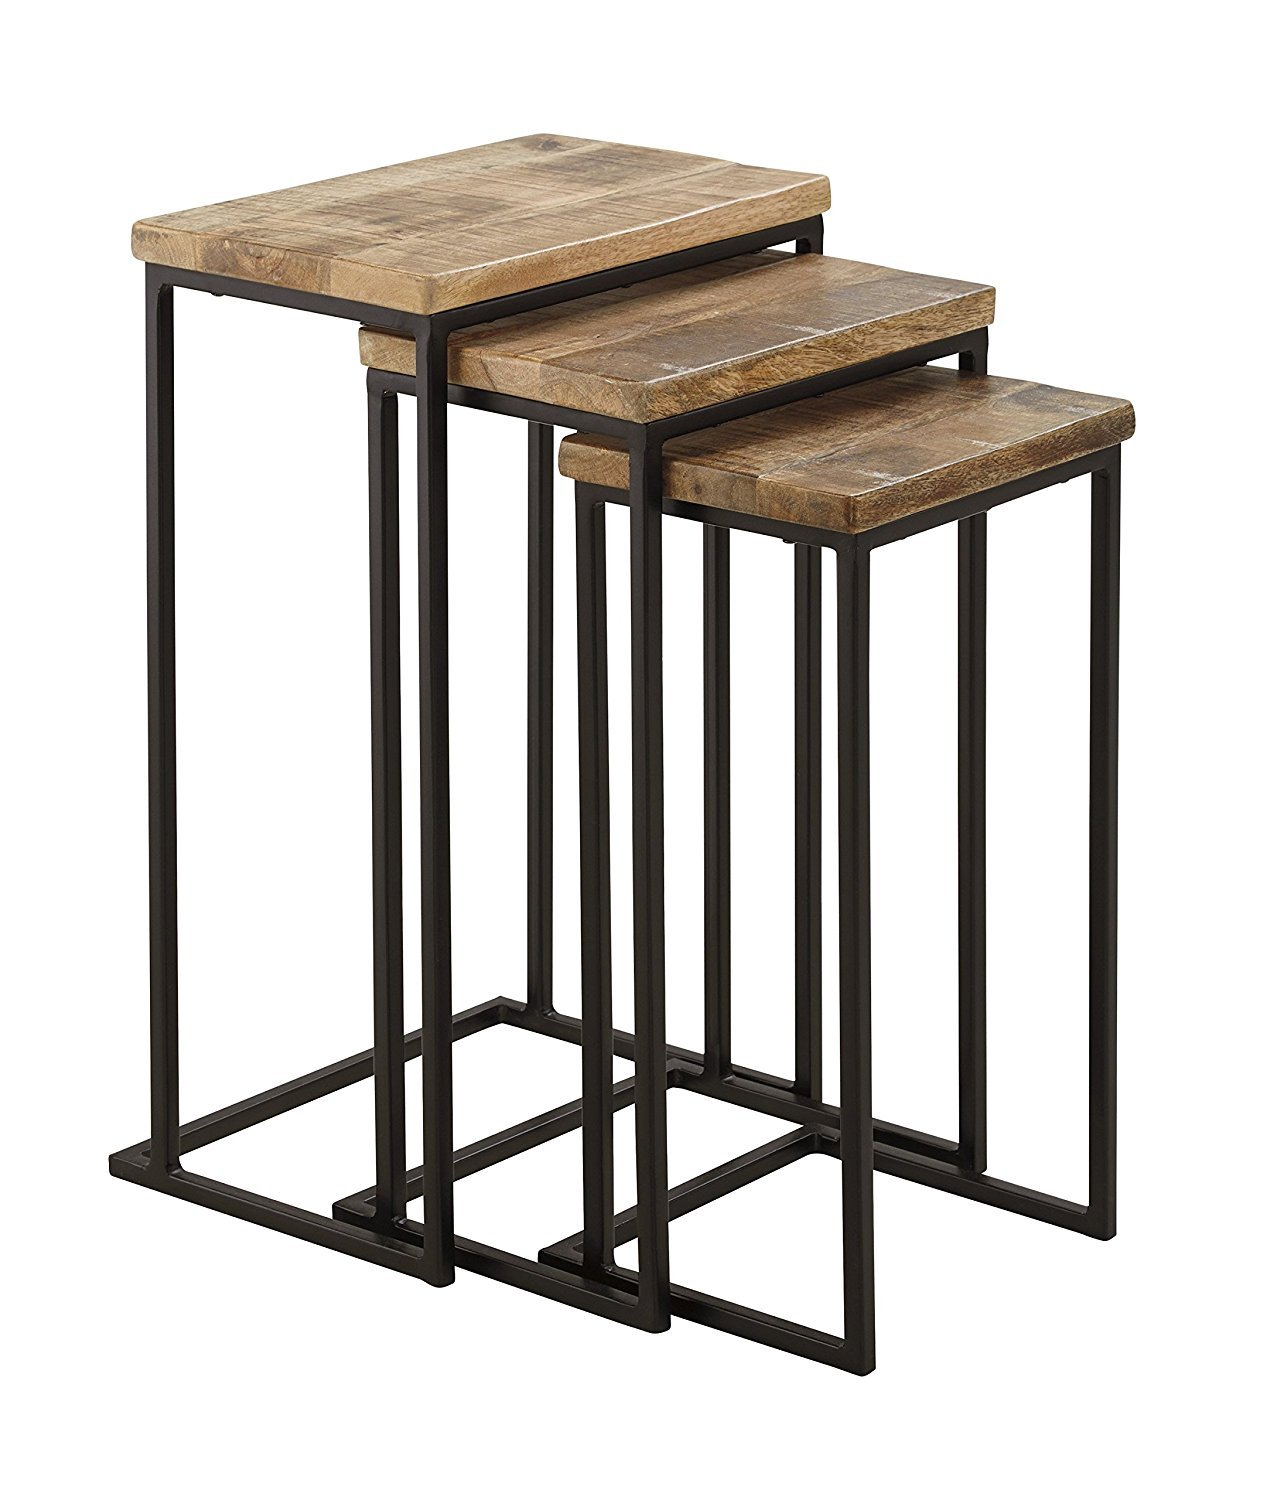 3 Piece End Tables Home Furniture Design